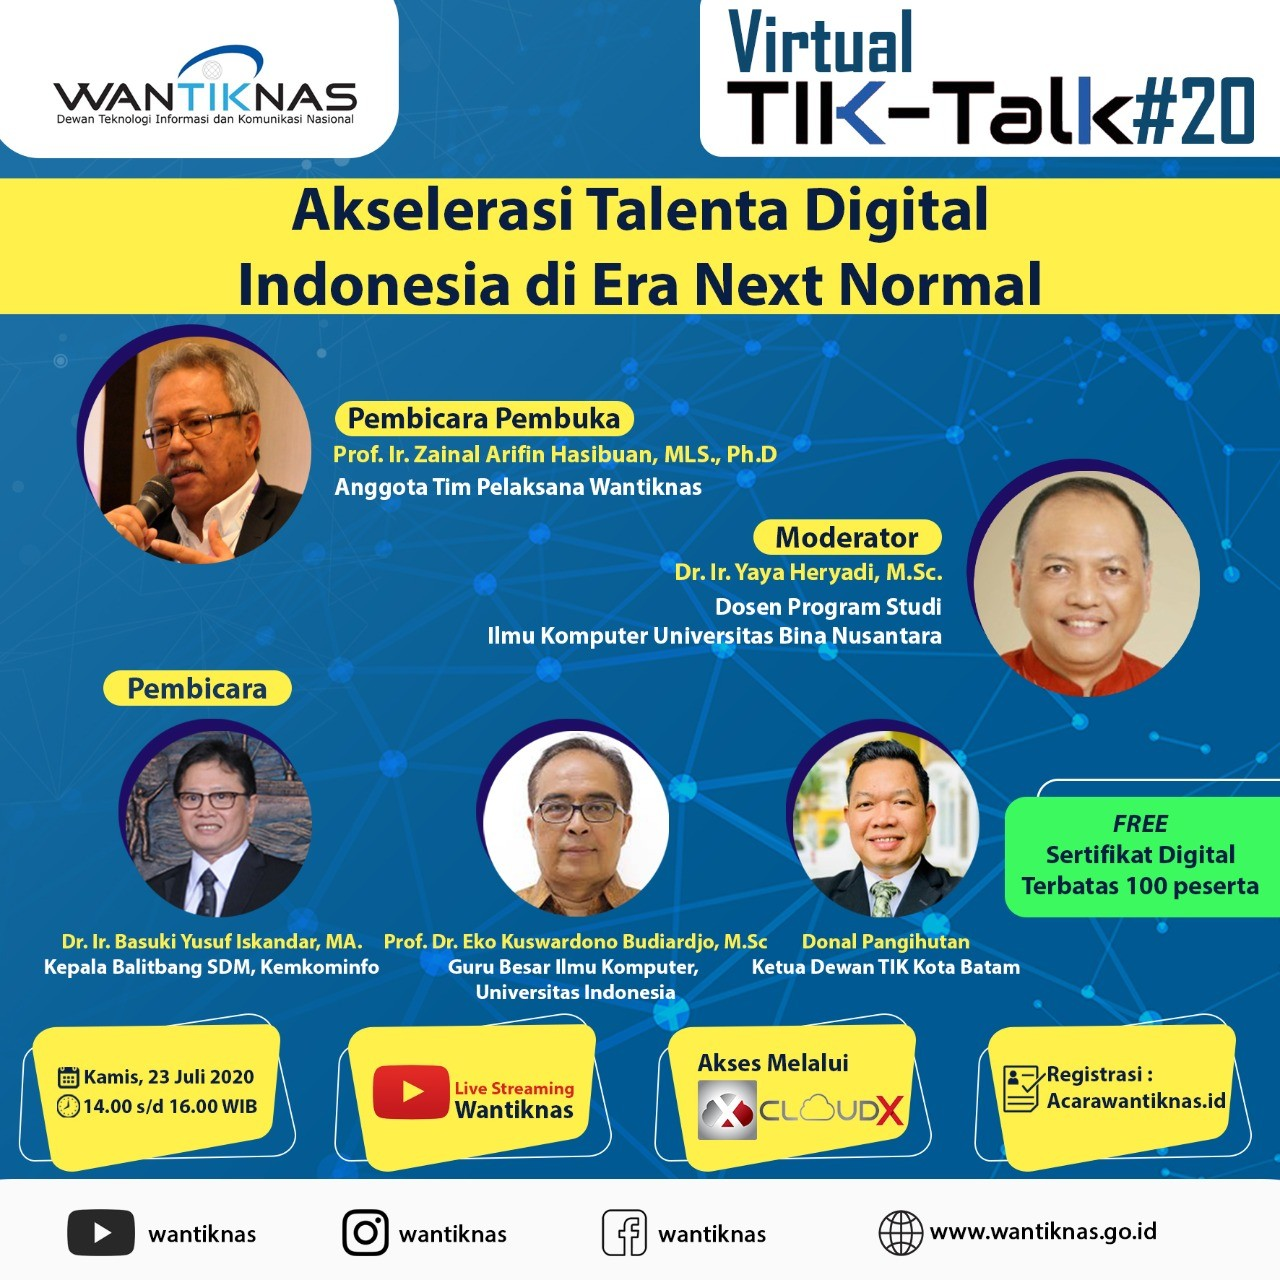 Akselerasi Talenta Digital Indonesia di Era Next Normal